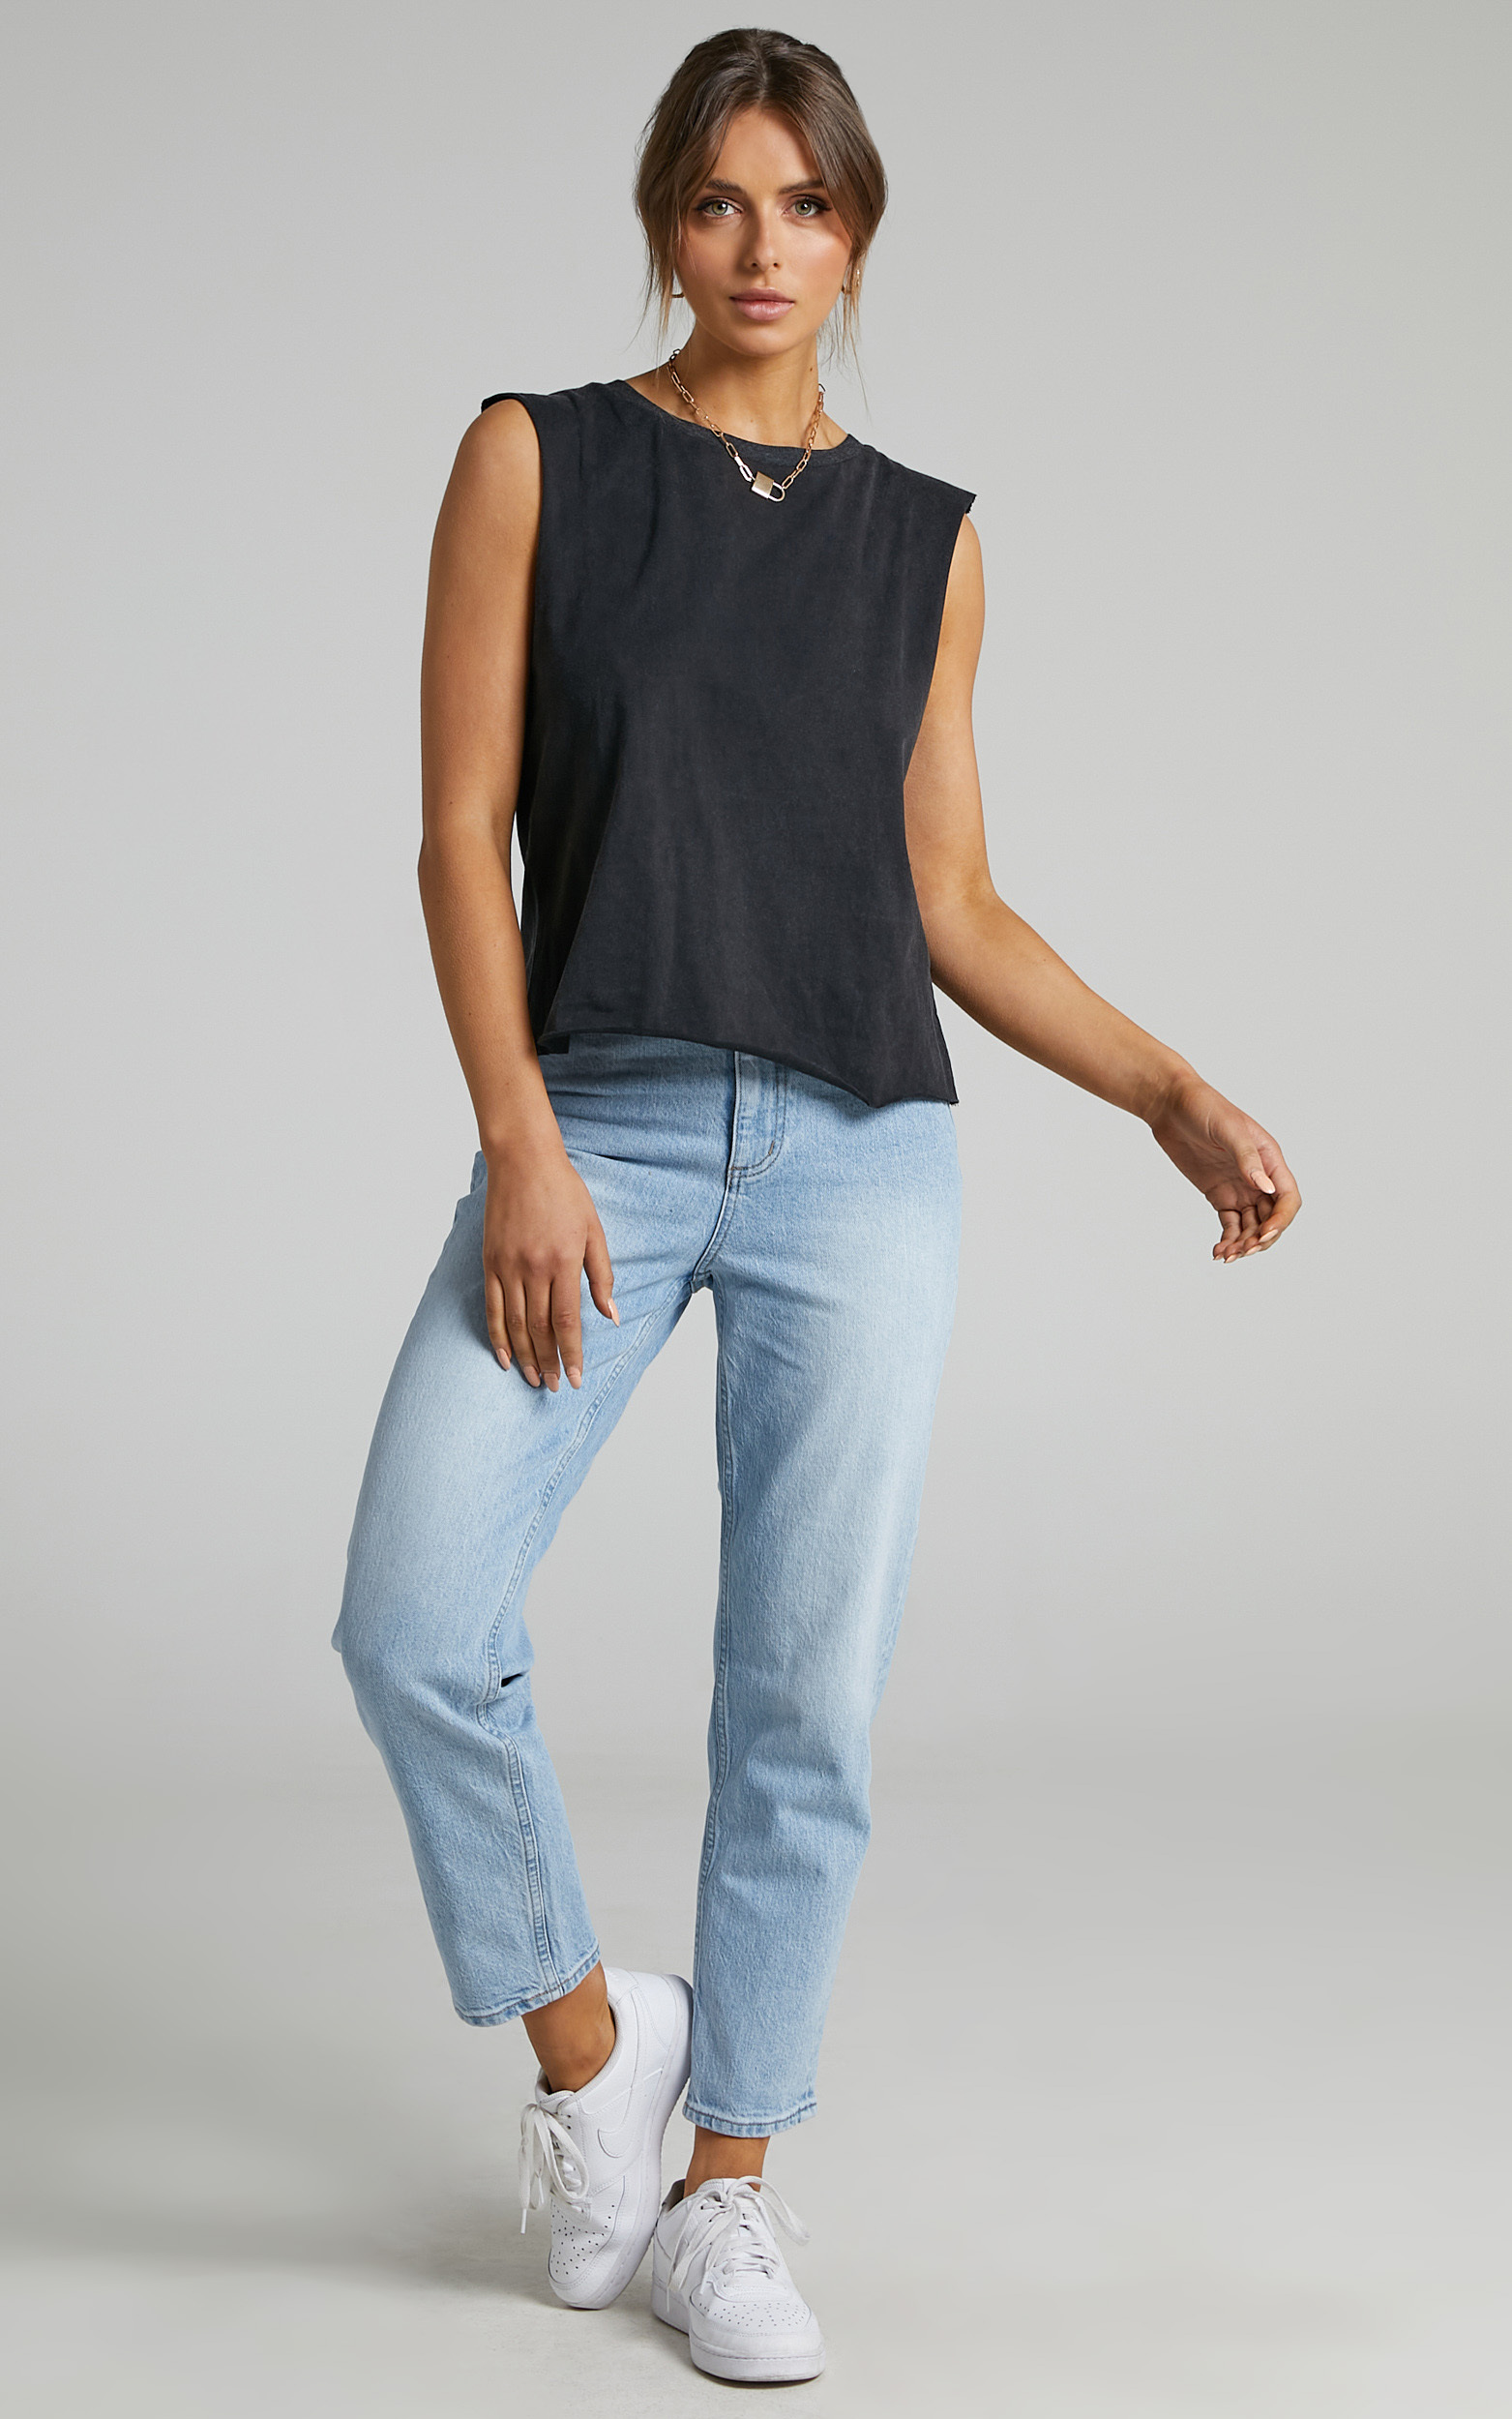 Gia Tee in Washed Black - 06, BLK1, hi-res image number null